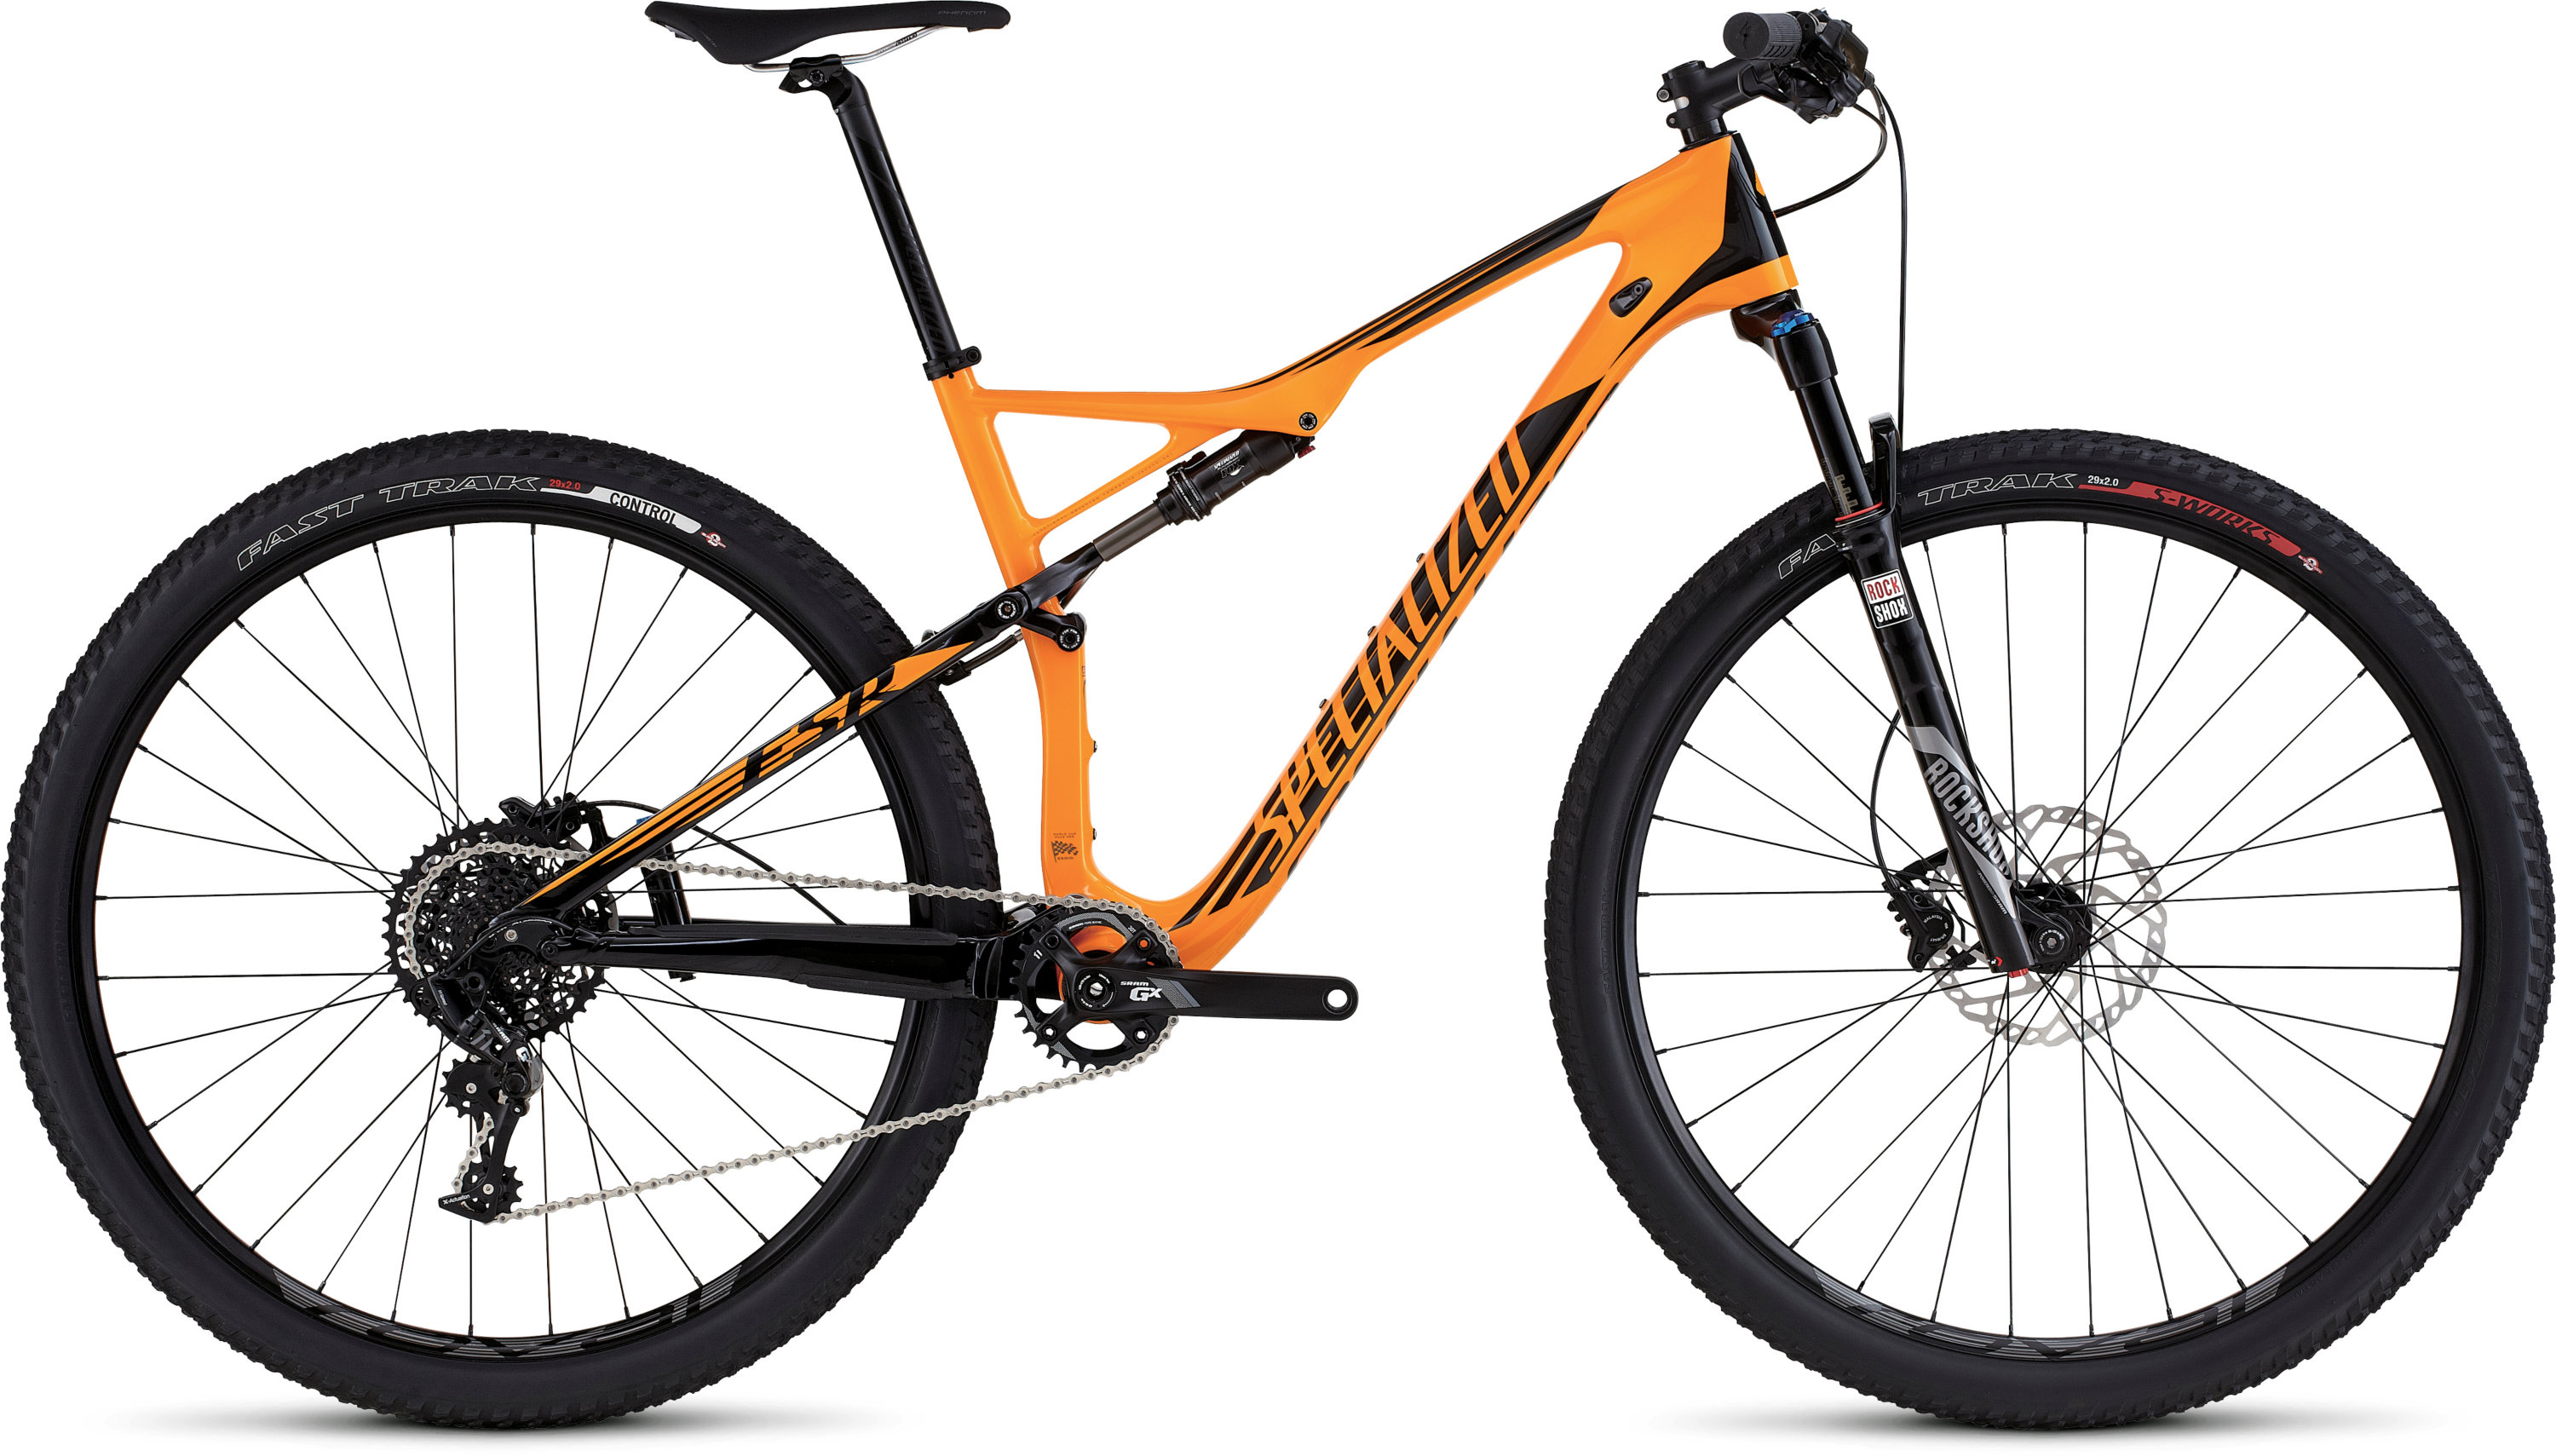 SPECIALIZED EPIC FSR COMP CARBON WC 29 GLDORG/BLK S - schneider-sports